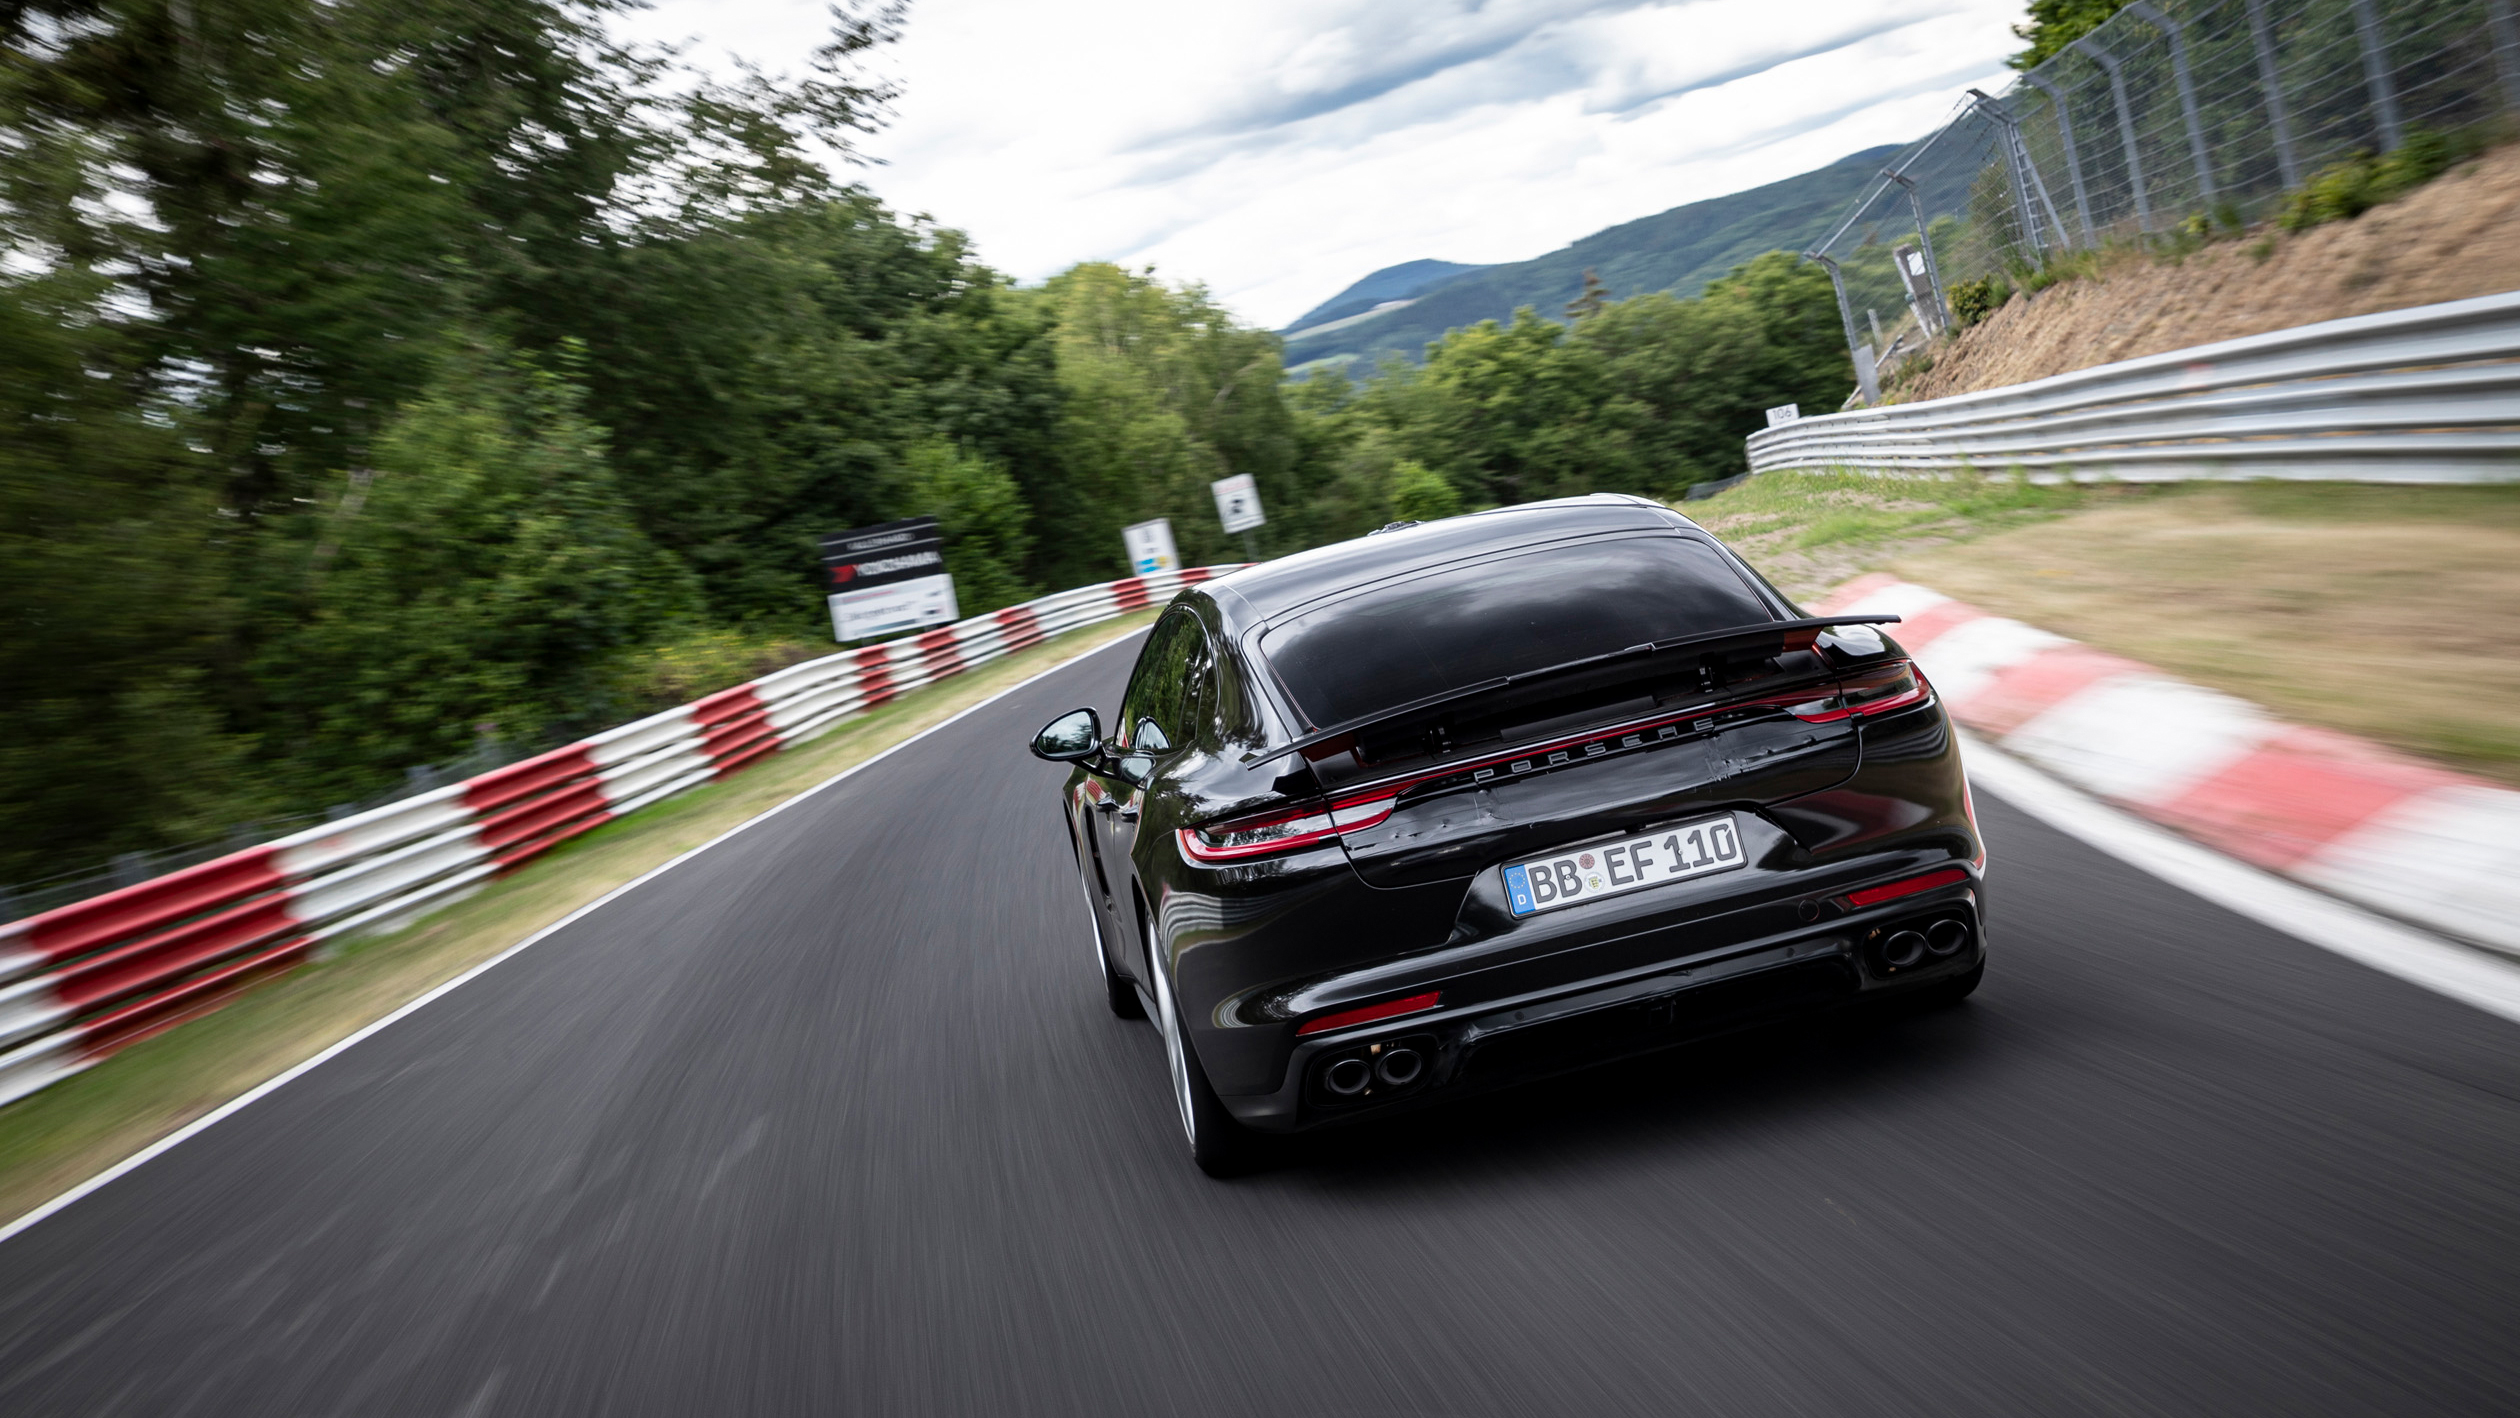 Nürburgring laptime set in Panamera S